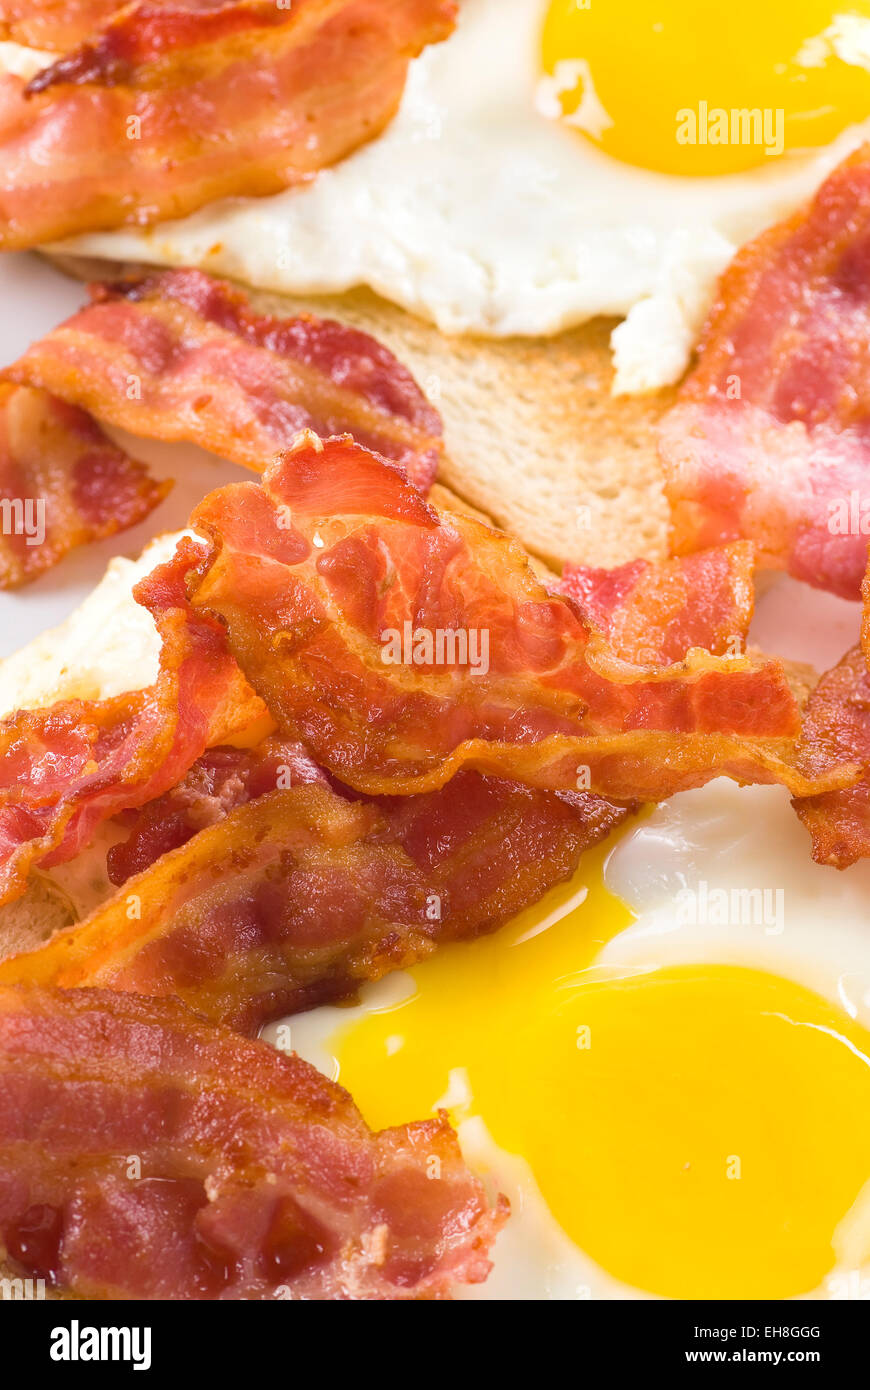 Fried bacon and eggs on white bread. - Stock Image